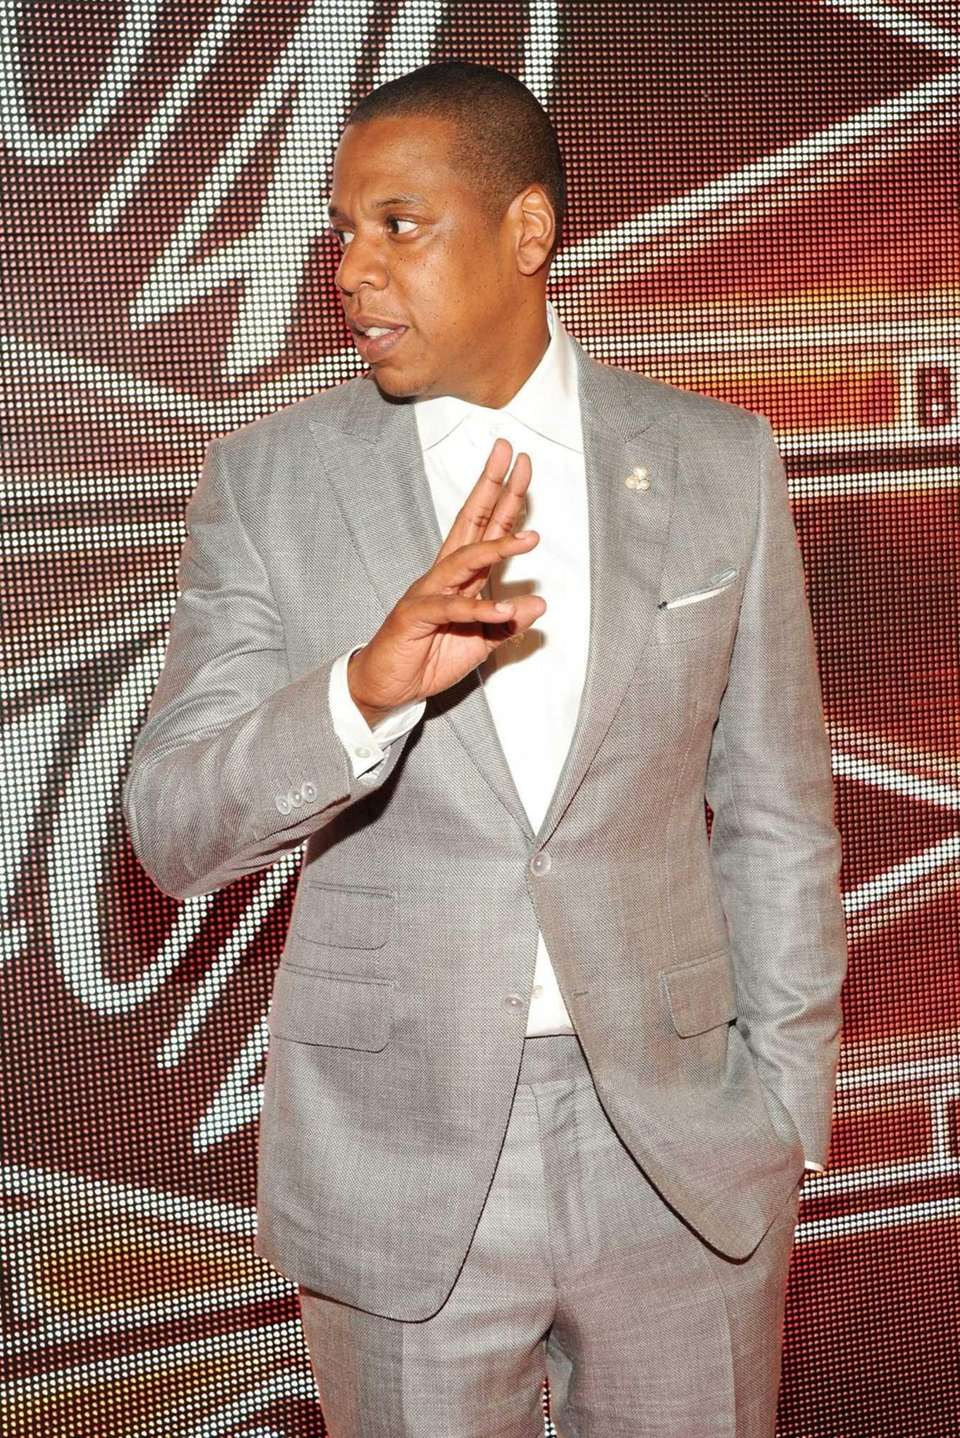 Jay Z attends The 40/40 Club 10 Year